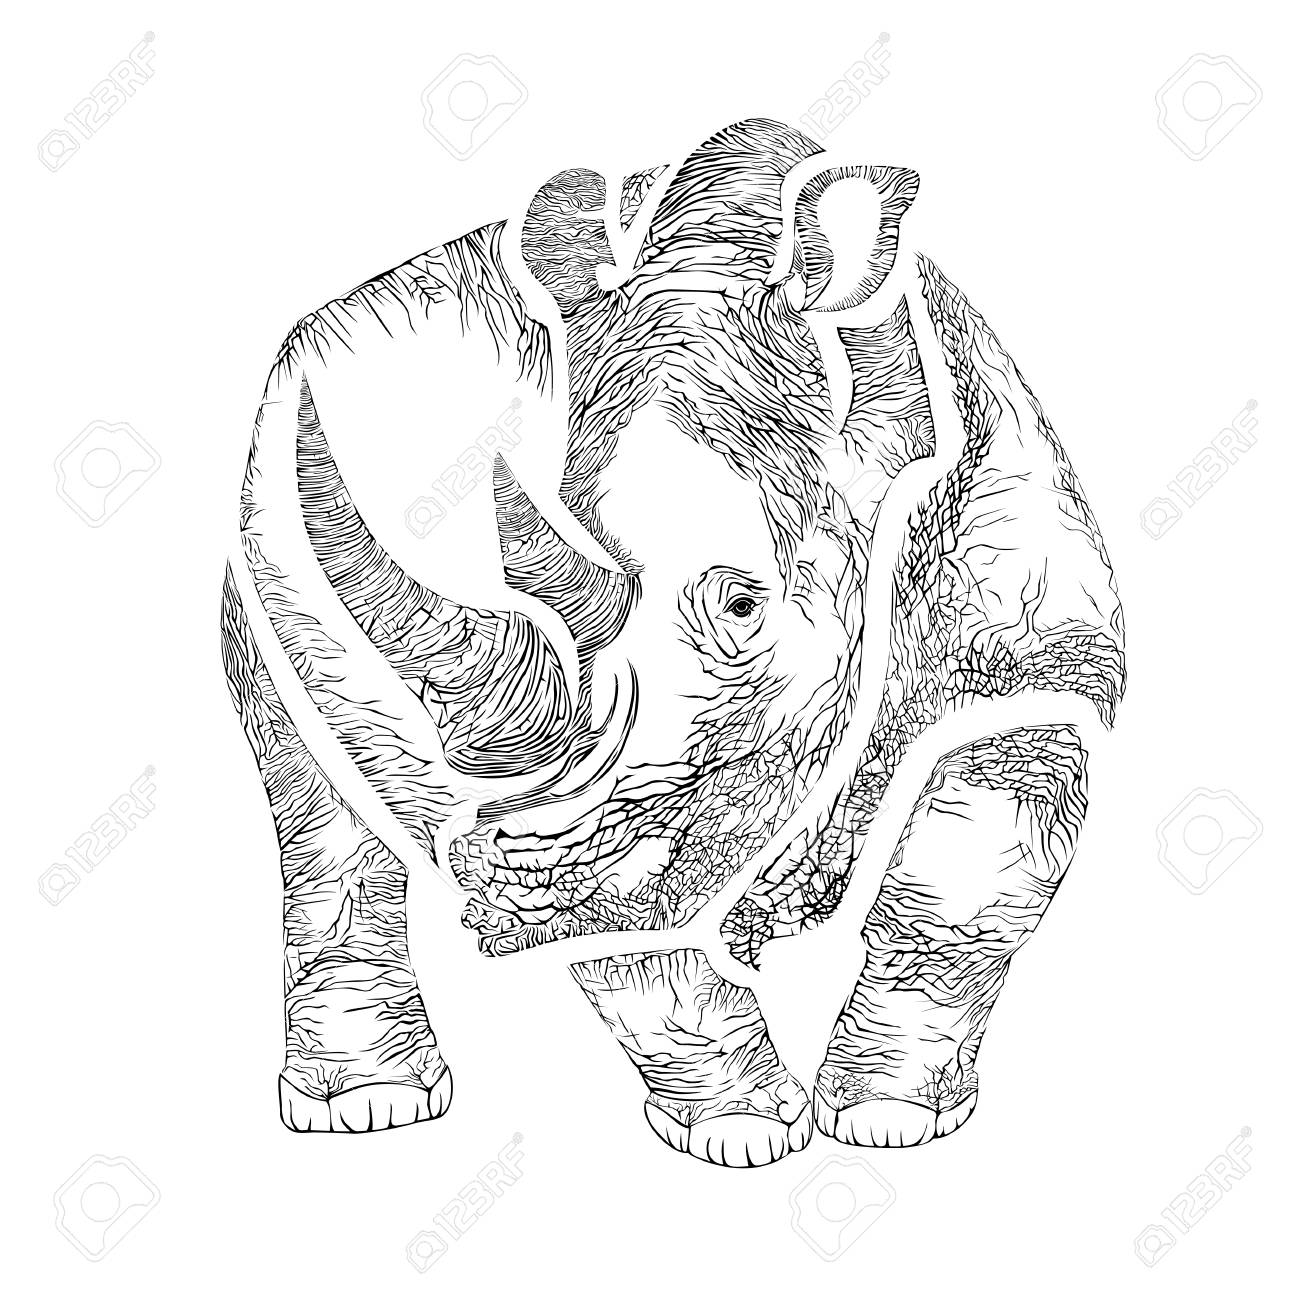 Vector image of a Rhino in the graphic style